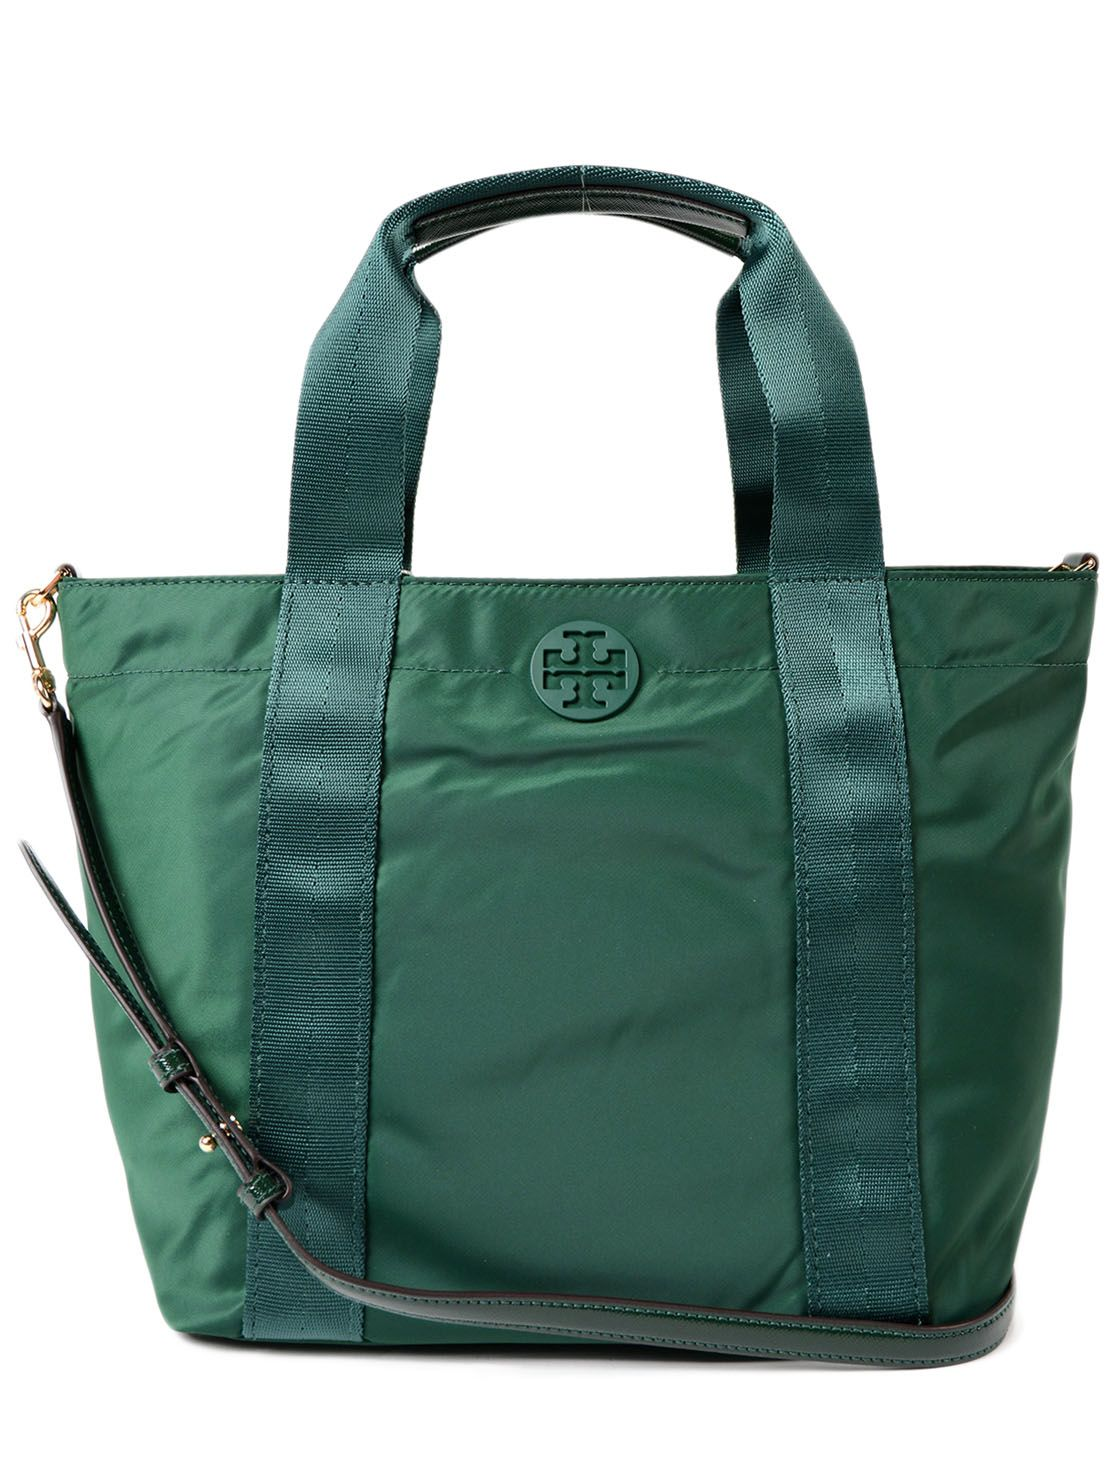 Tory Burch Quinn Small Zip Tote